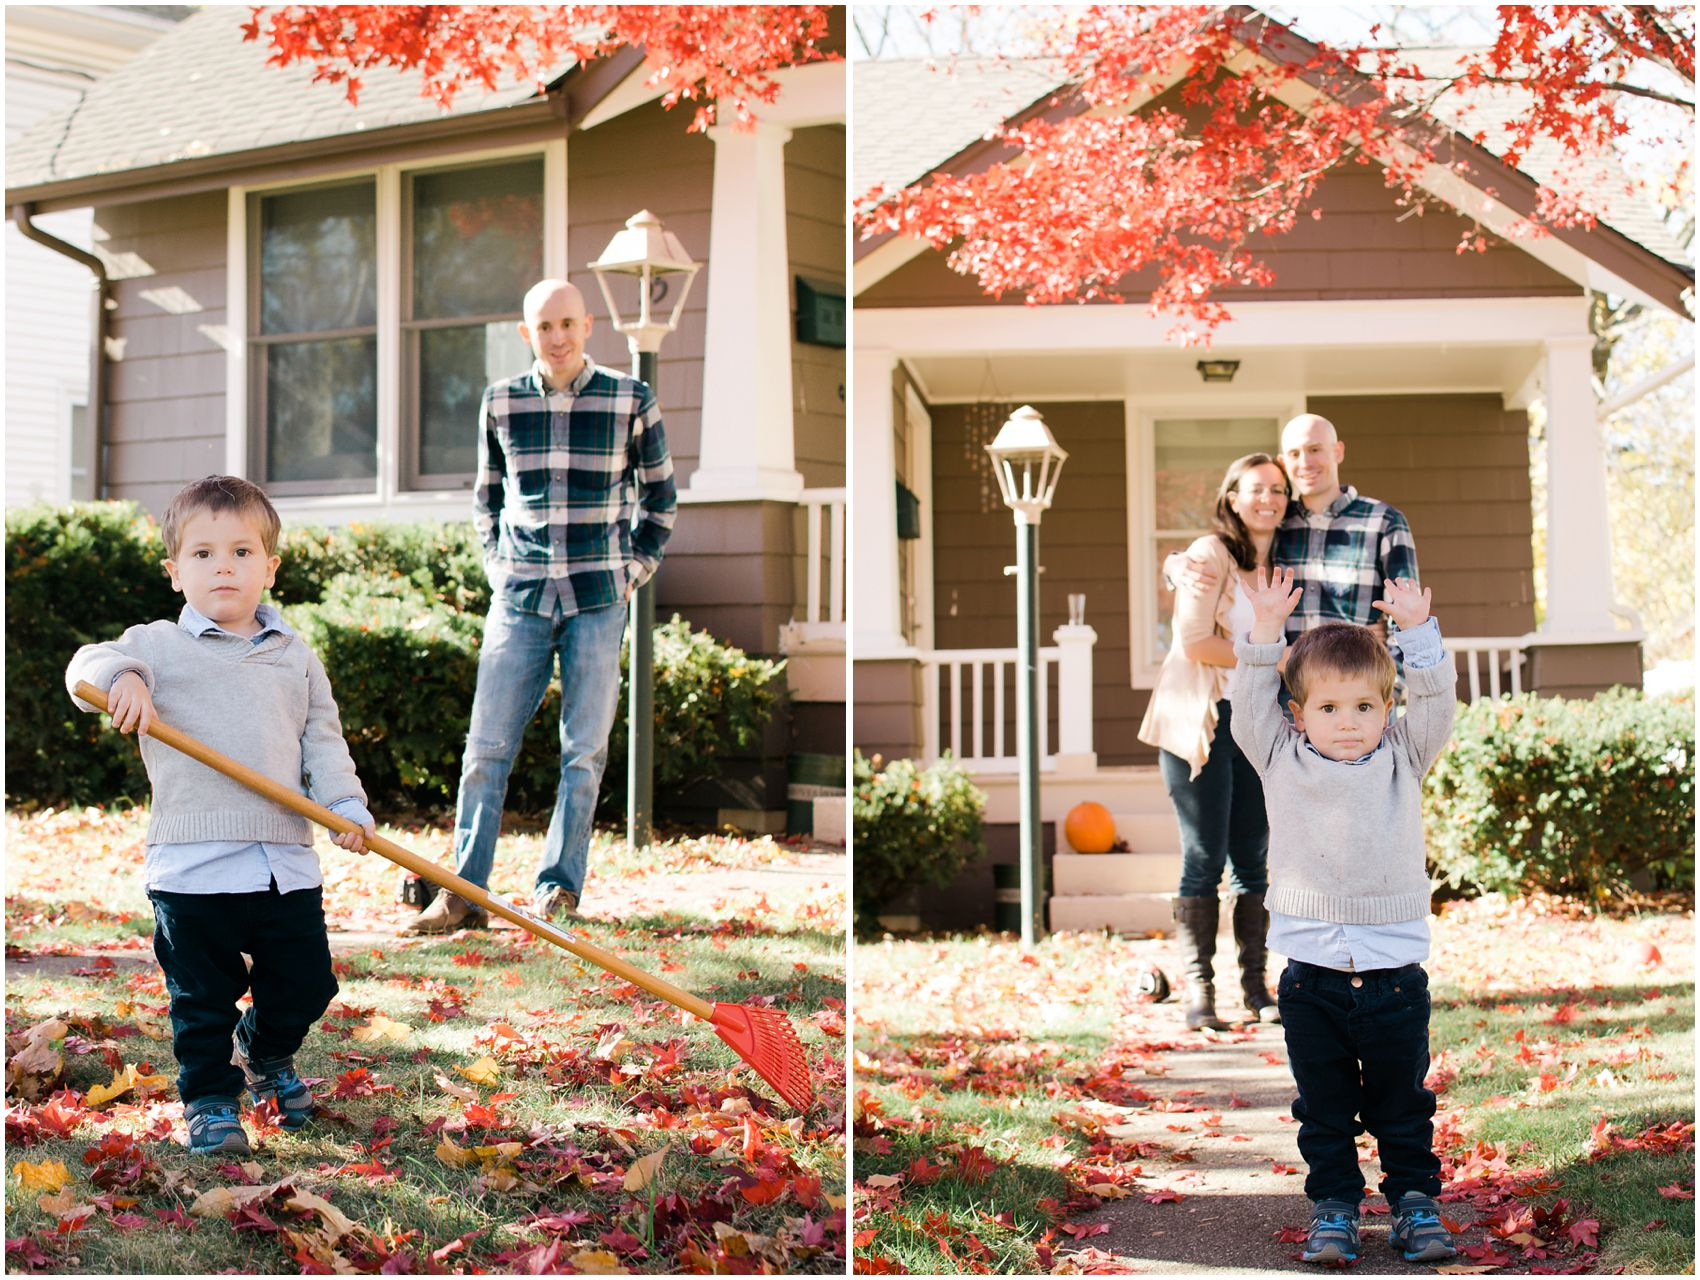 Family photographer Miriam Dubinsky shares the best place for fall family portraits with a family raking leaves and smiling